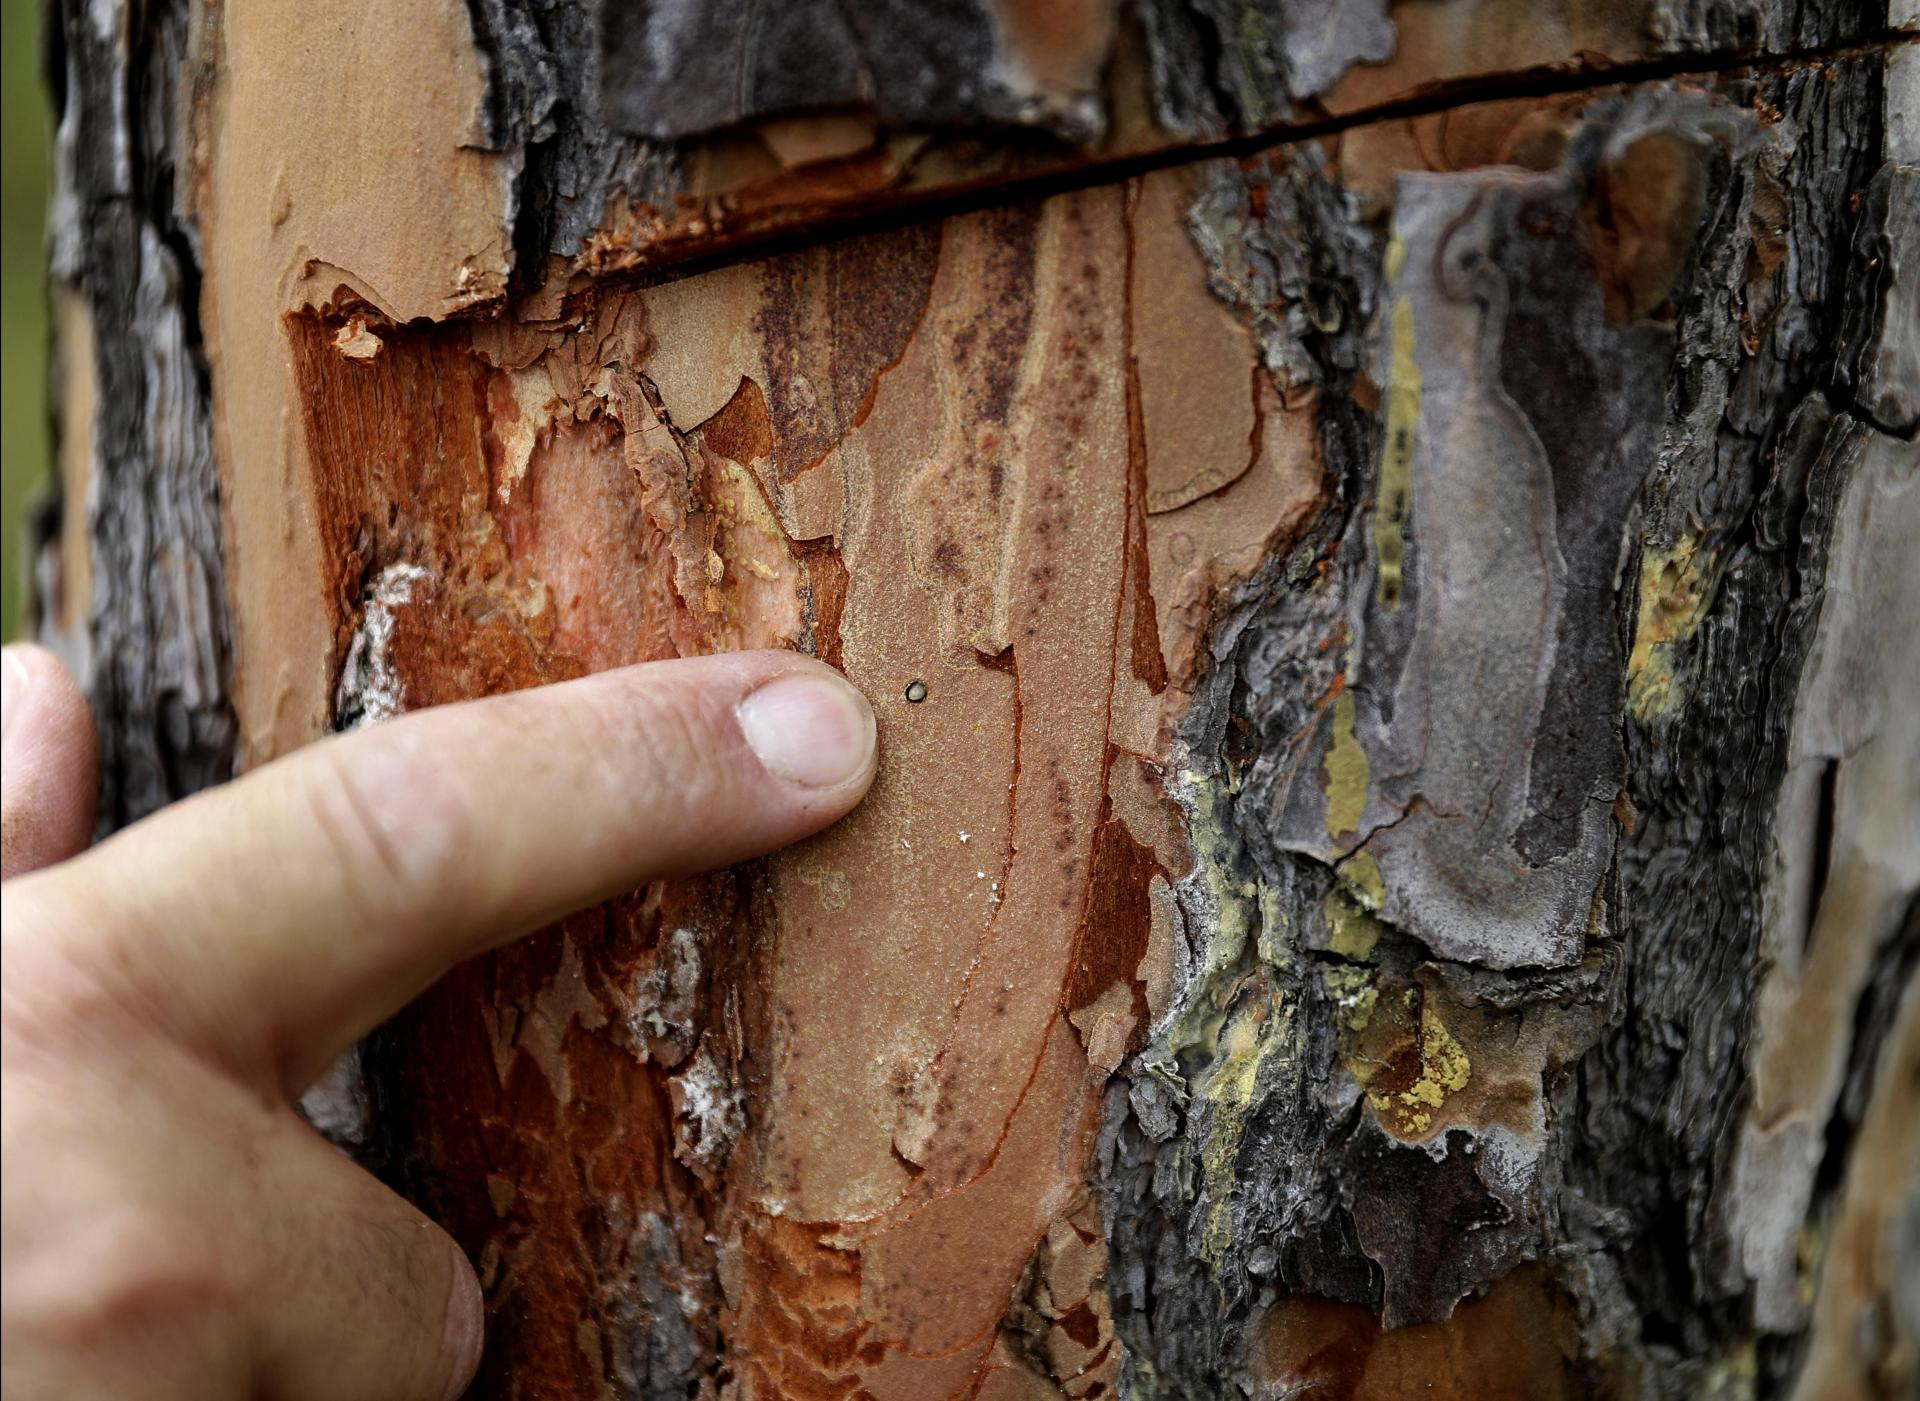 Nabil Nemer inspects a diseased pine tree for harmful insects.